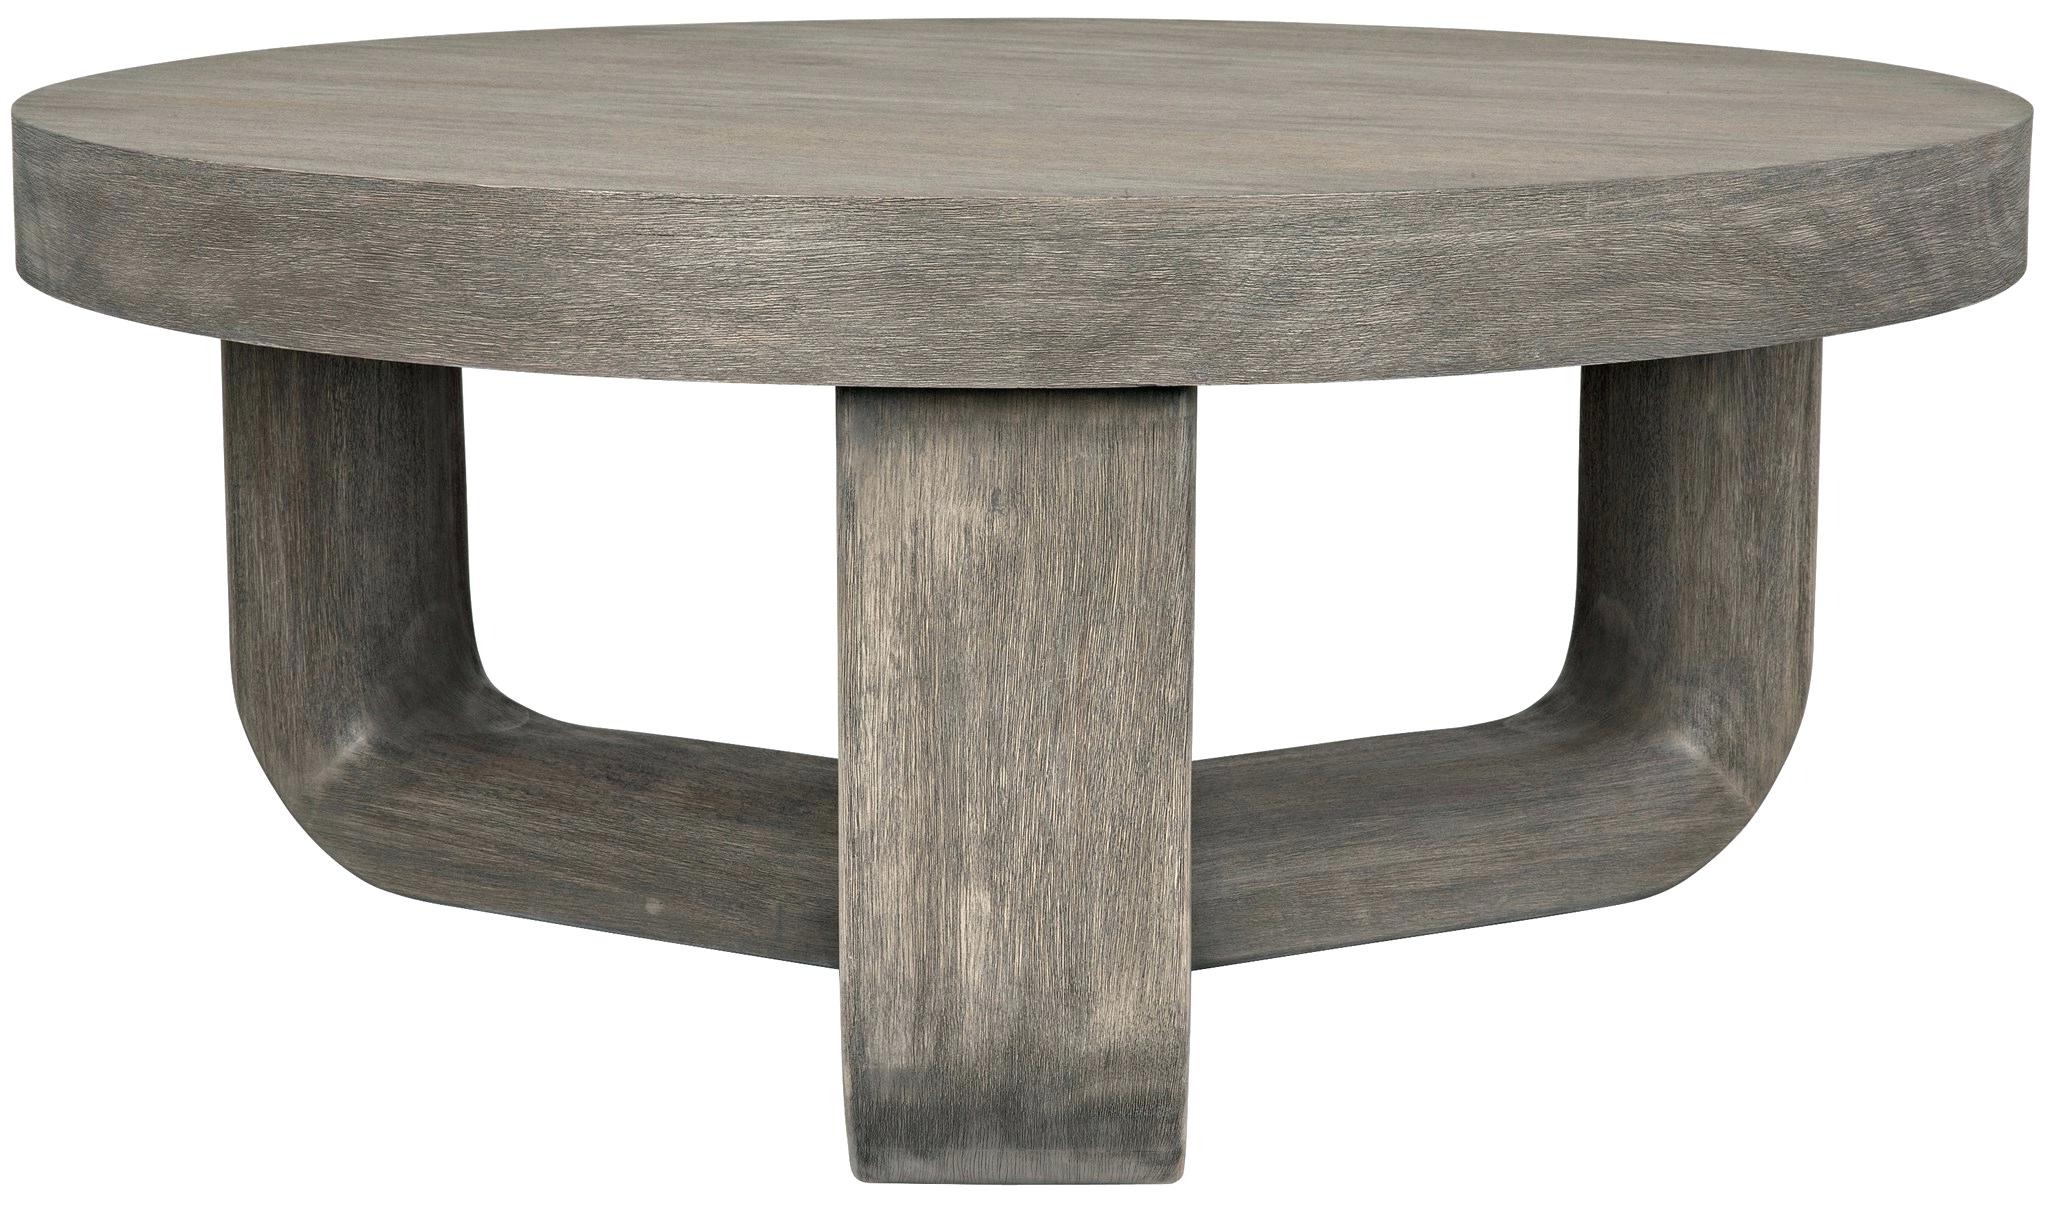 2020 Tribeca Contemporary Distressed Silver And Smoke Grey Coffee Tables In Distressed Grey Coffee Table – Theworksrec (View 1 of 20)